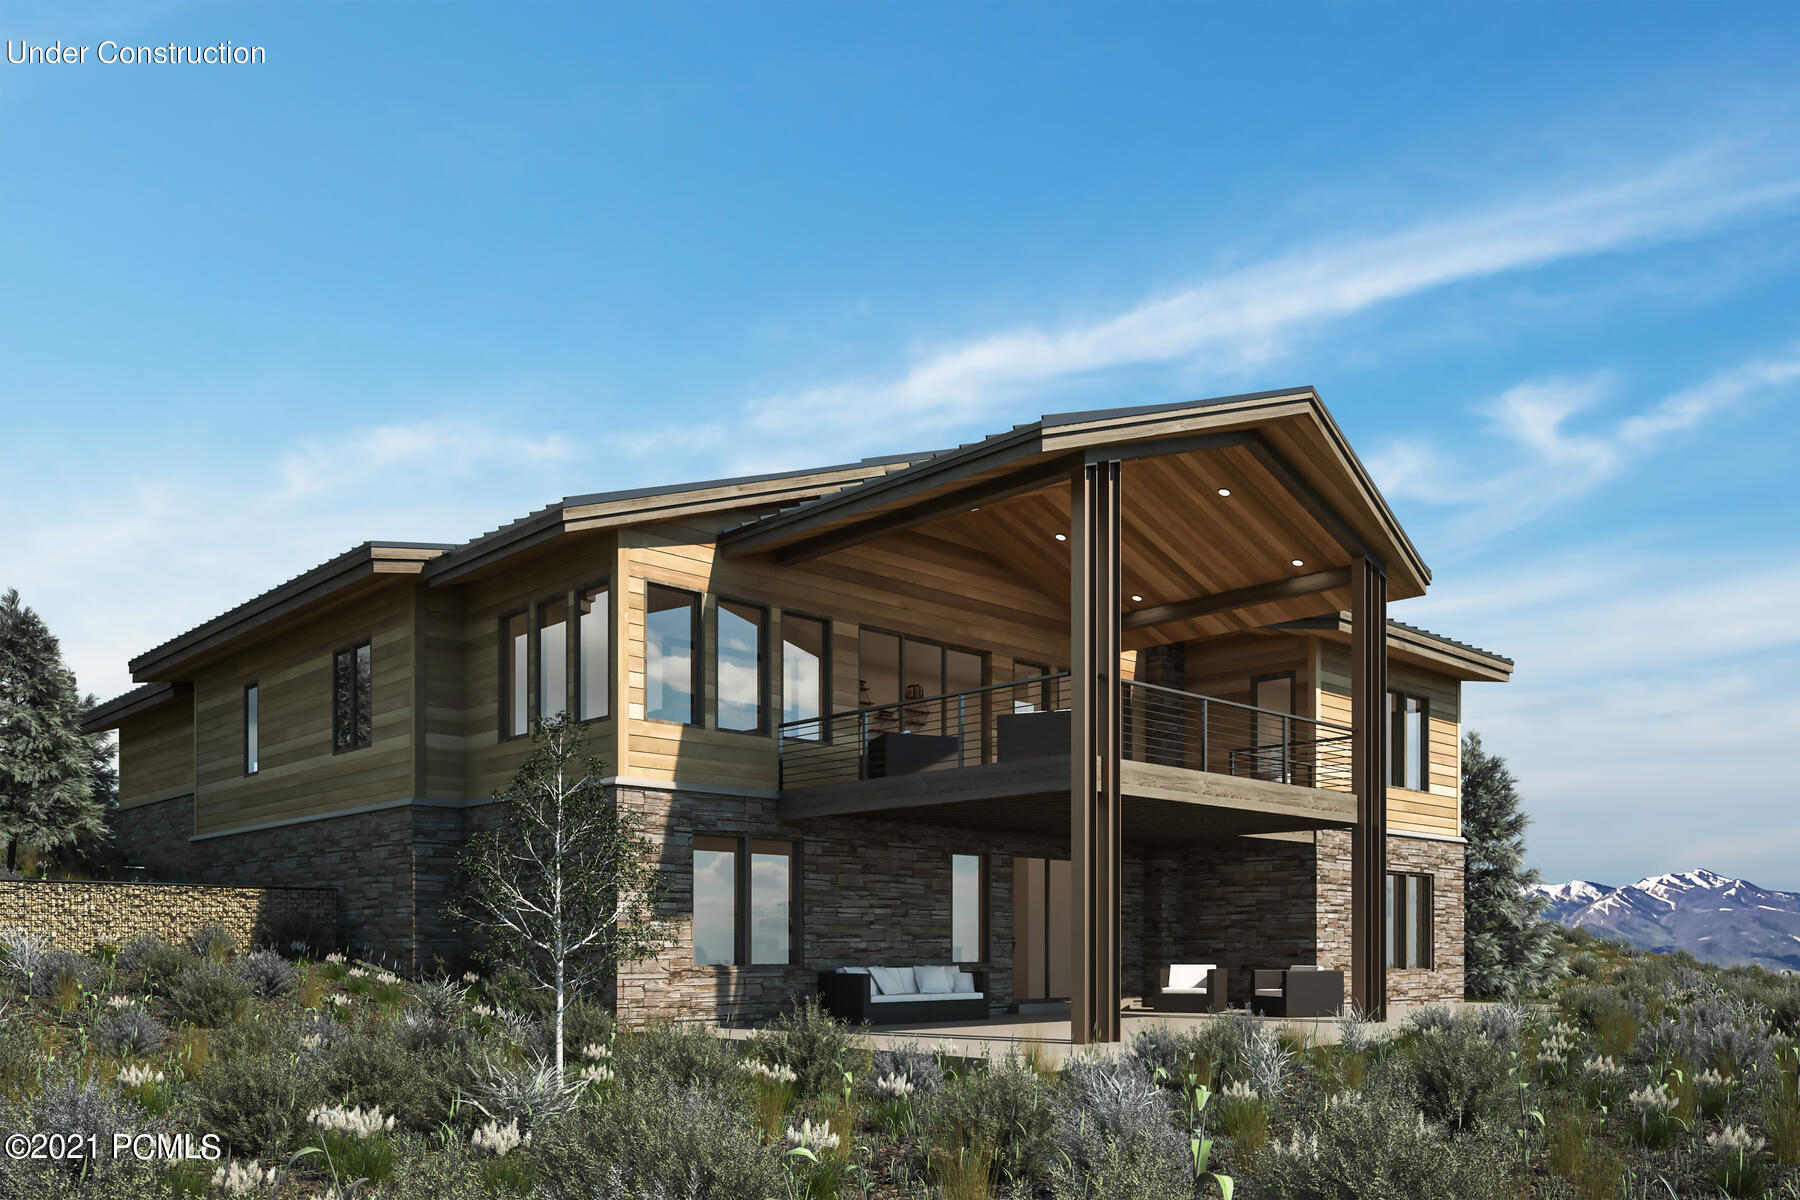 Located above the signature Nicklaus Painted Valley Course, this 1.70-acre lot with a Wyeth model is the perfect place to build your dream home in the mountains. This homesite offers stunning golf views and is in close proximity to the Beach House, Promontory's newest amenity. Just minutes from downtown Park City, Promontory stretches over 7,200 acres and is the perfect four-season mountain club for all ages, offering a wide array of activities for the whole family. Common area amenities are available upon acquiring a separate Membership. For buying incentives, please contact your on-site Promontory Sales Executive. Membership available through separate purchase pending approval by Promontory Club.